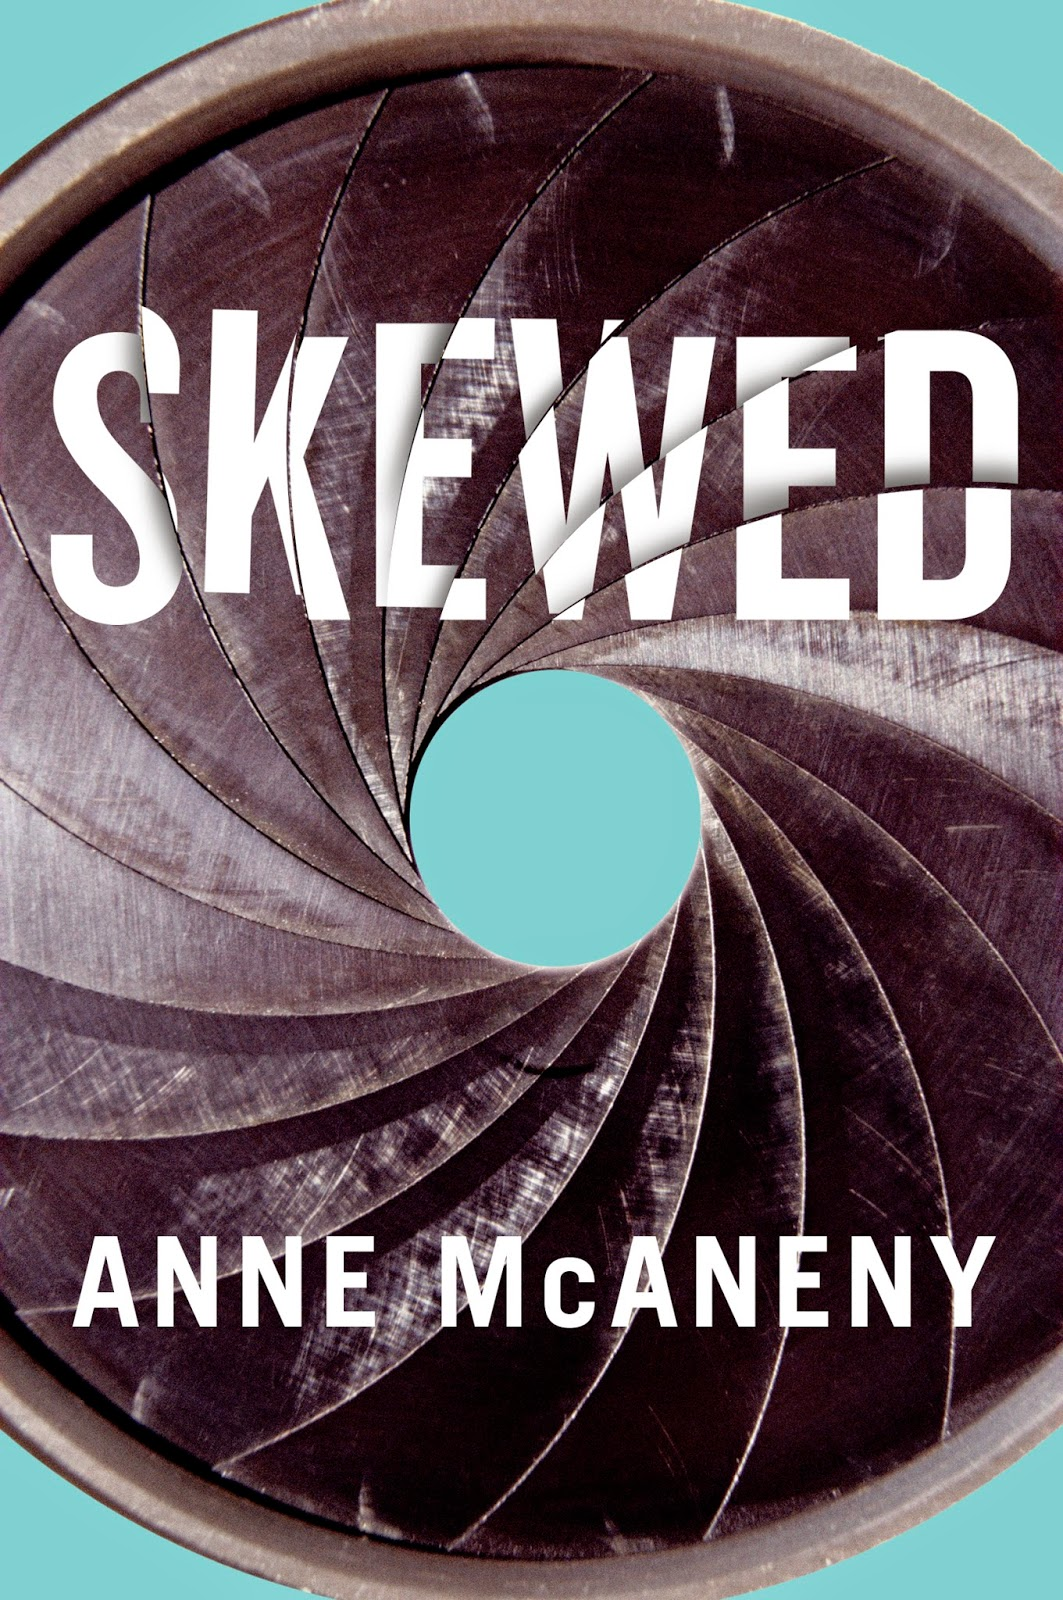 http://www.amazon.com/Skewed-Anne-McAneny-ebook/dp/B00IU11F0U